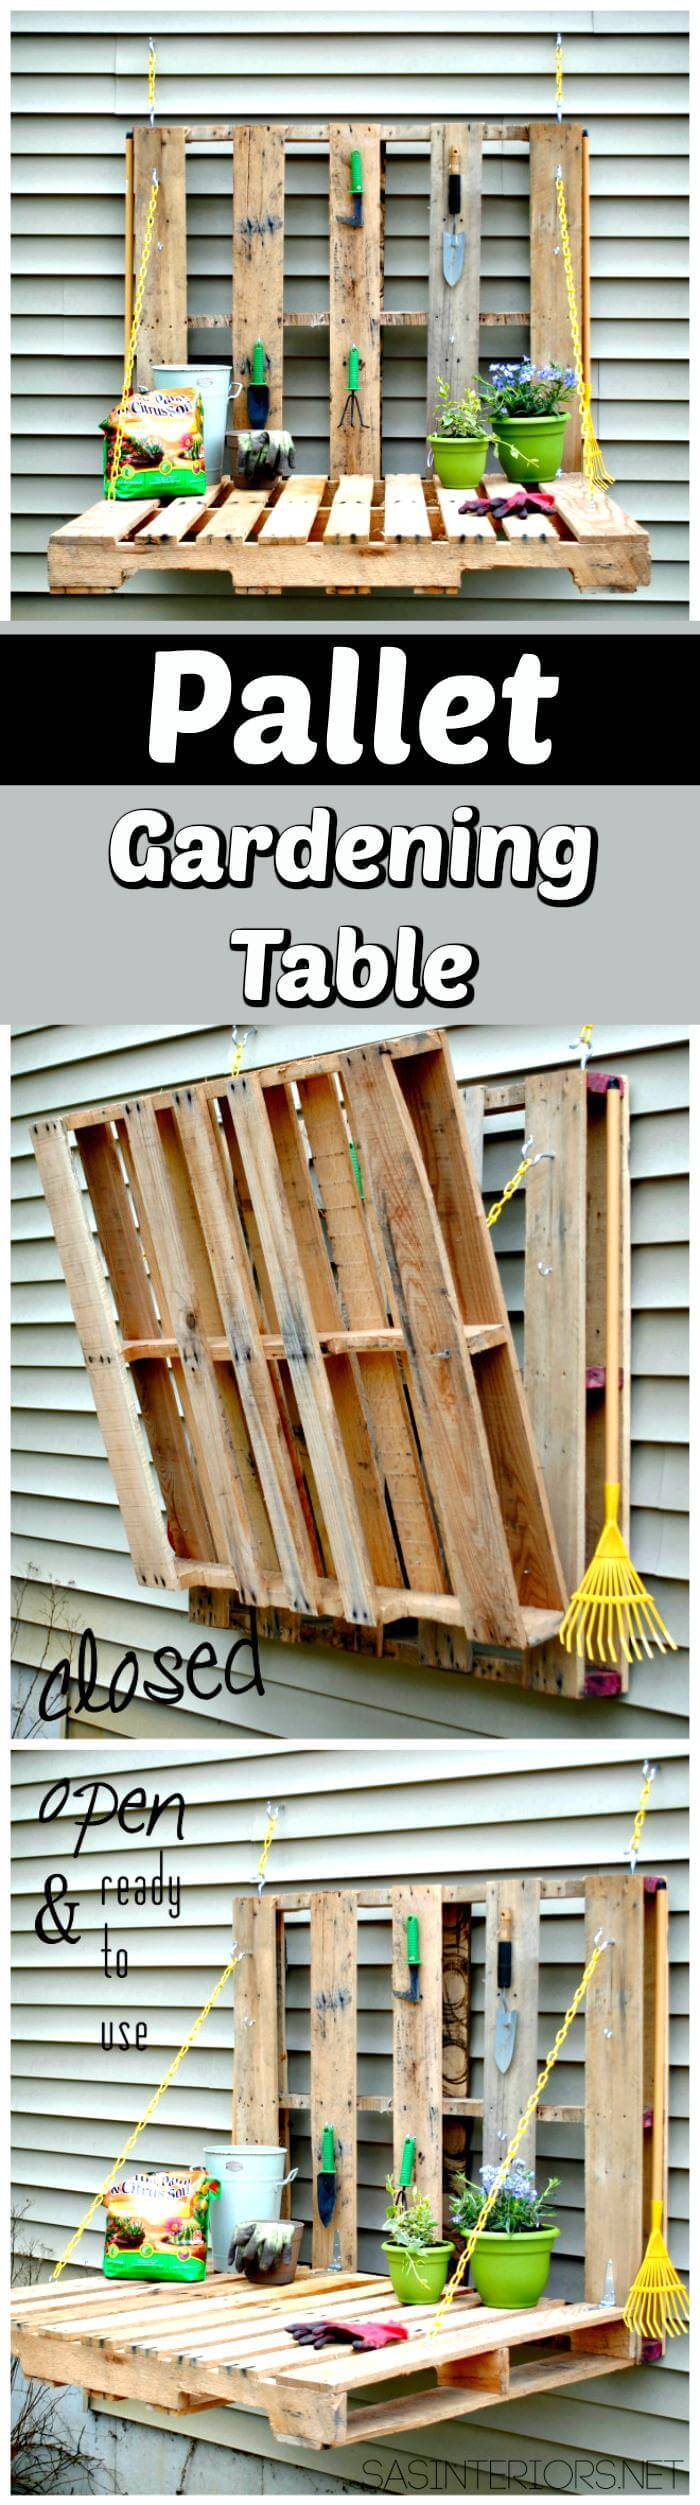 Wooden Pallet Gardening Table